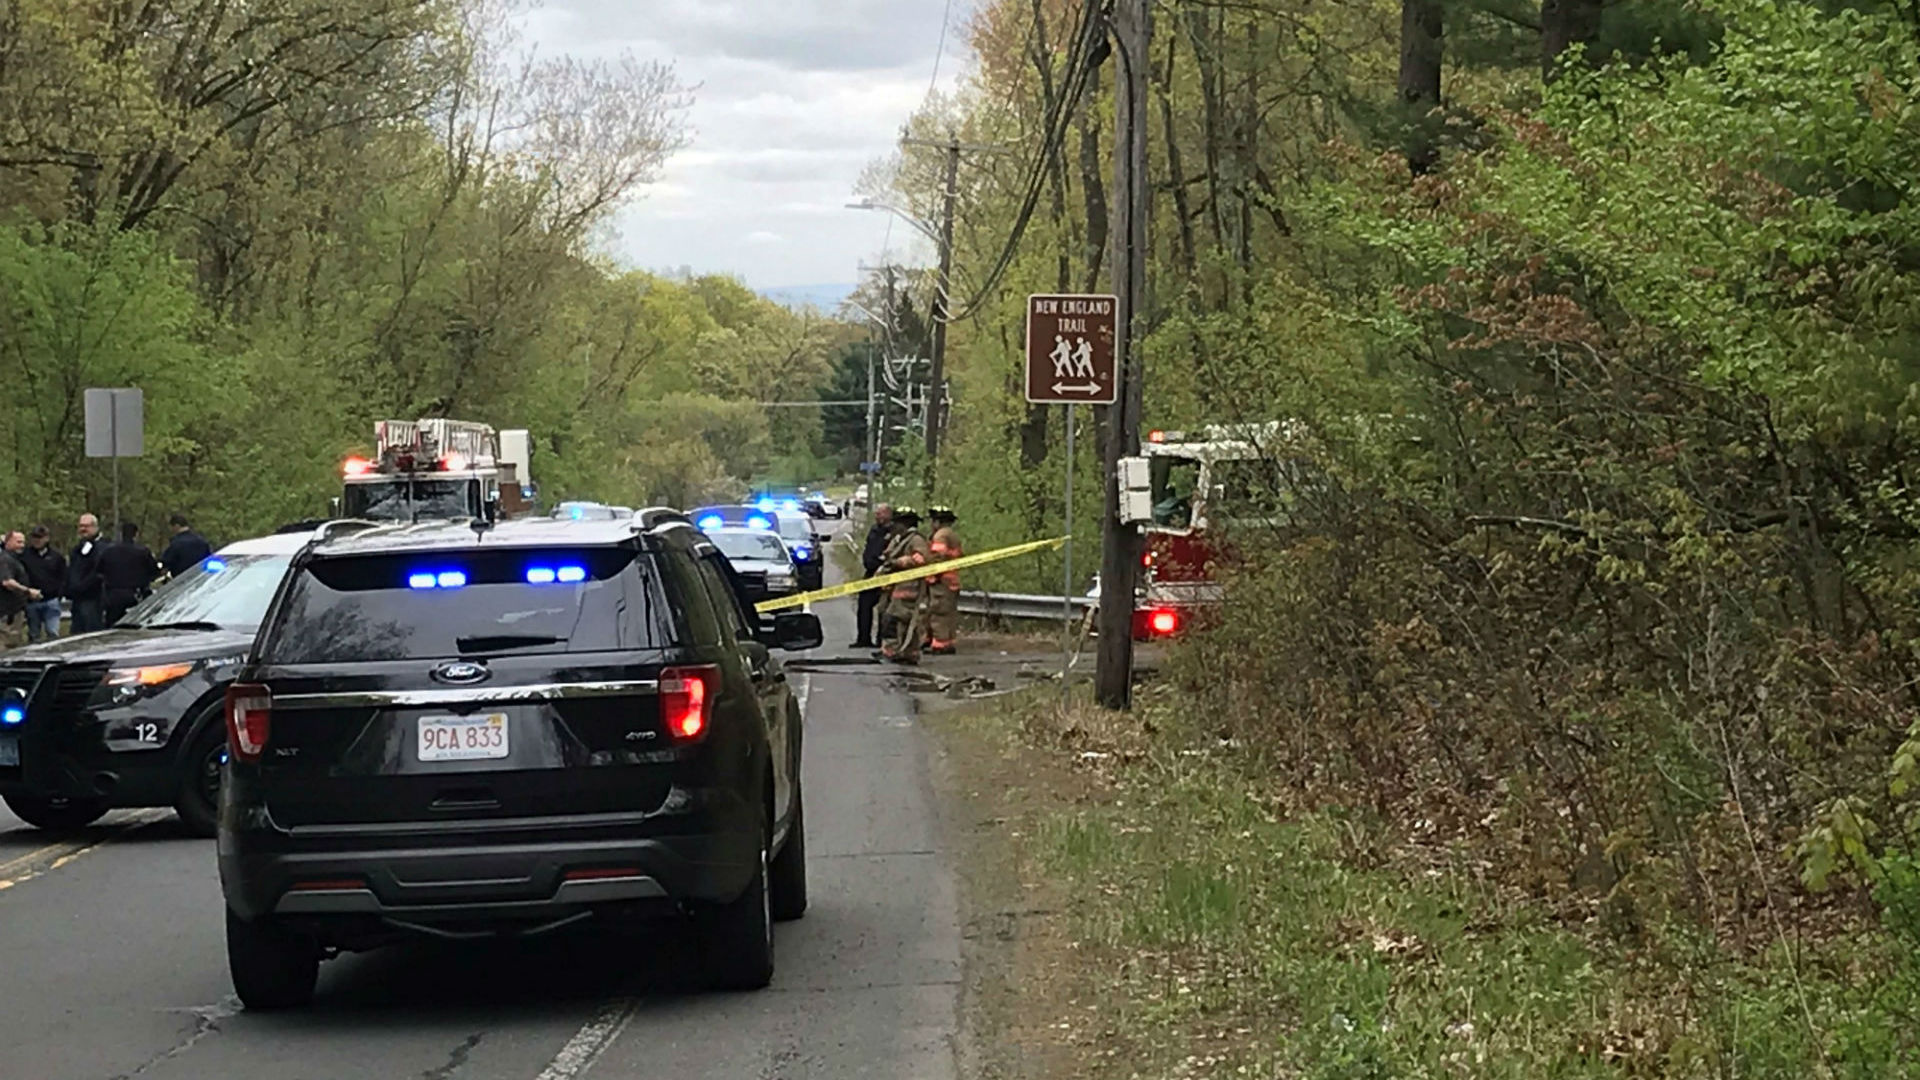 A Full Investigation Needed In Holyoke >> Route 141 Reopen After Deadly Accident In Holyoke